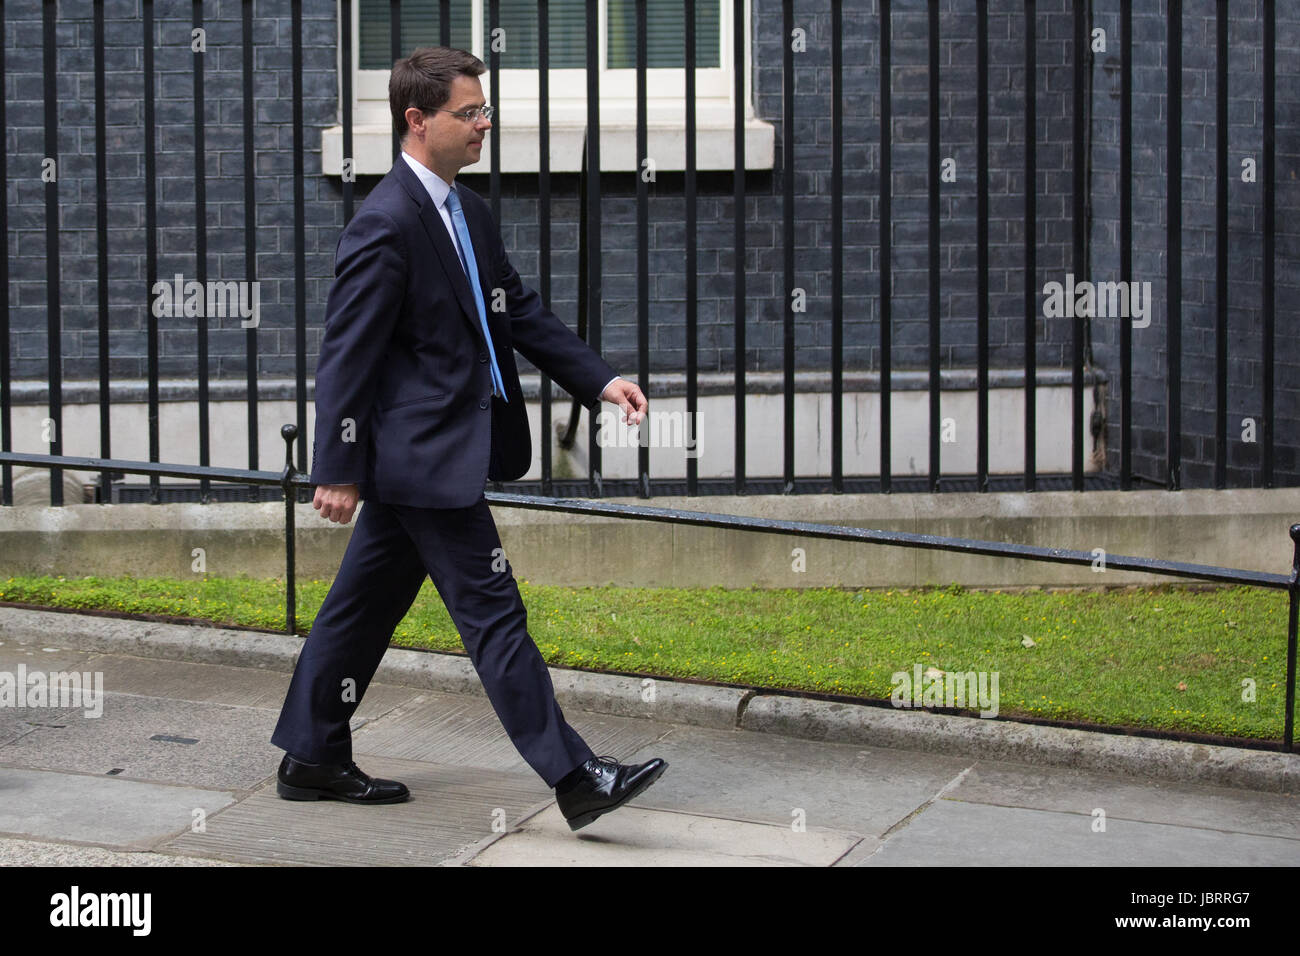 London, UK. 12th June, 2017. James Brokenshire MP, Secretary of State for Northern Ireland, leaves 10 Downing Street - Stock Image